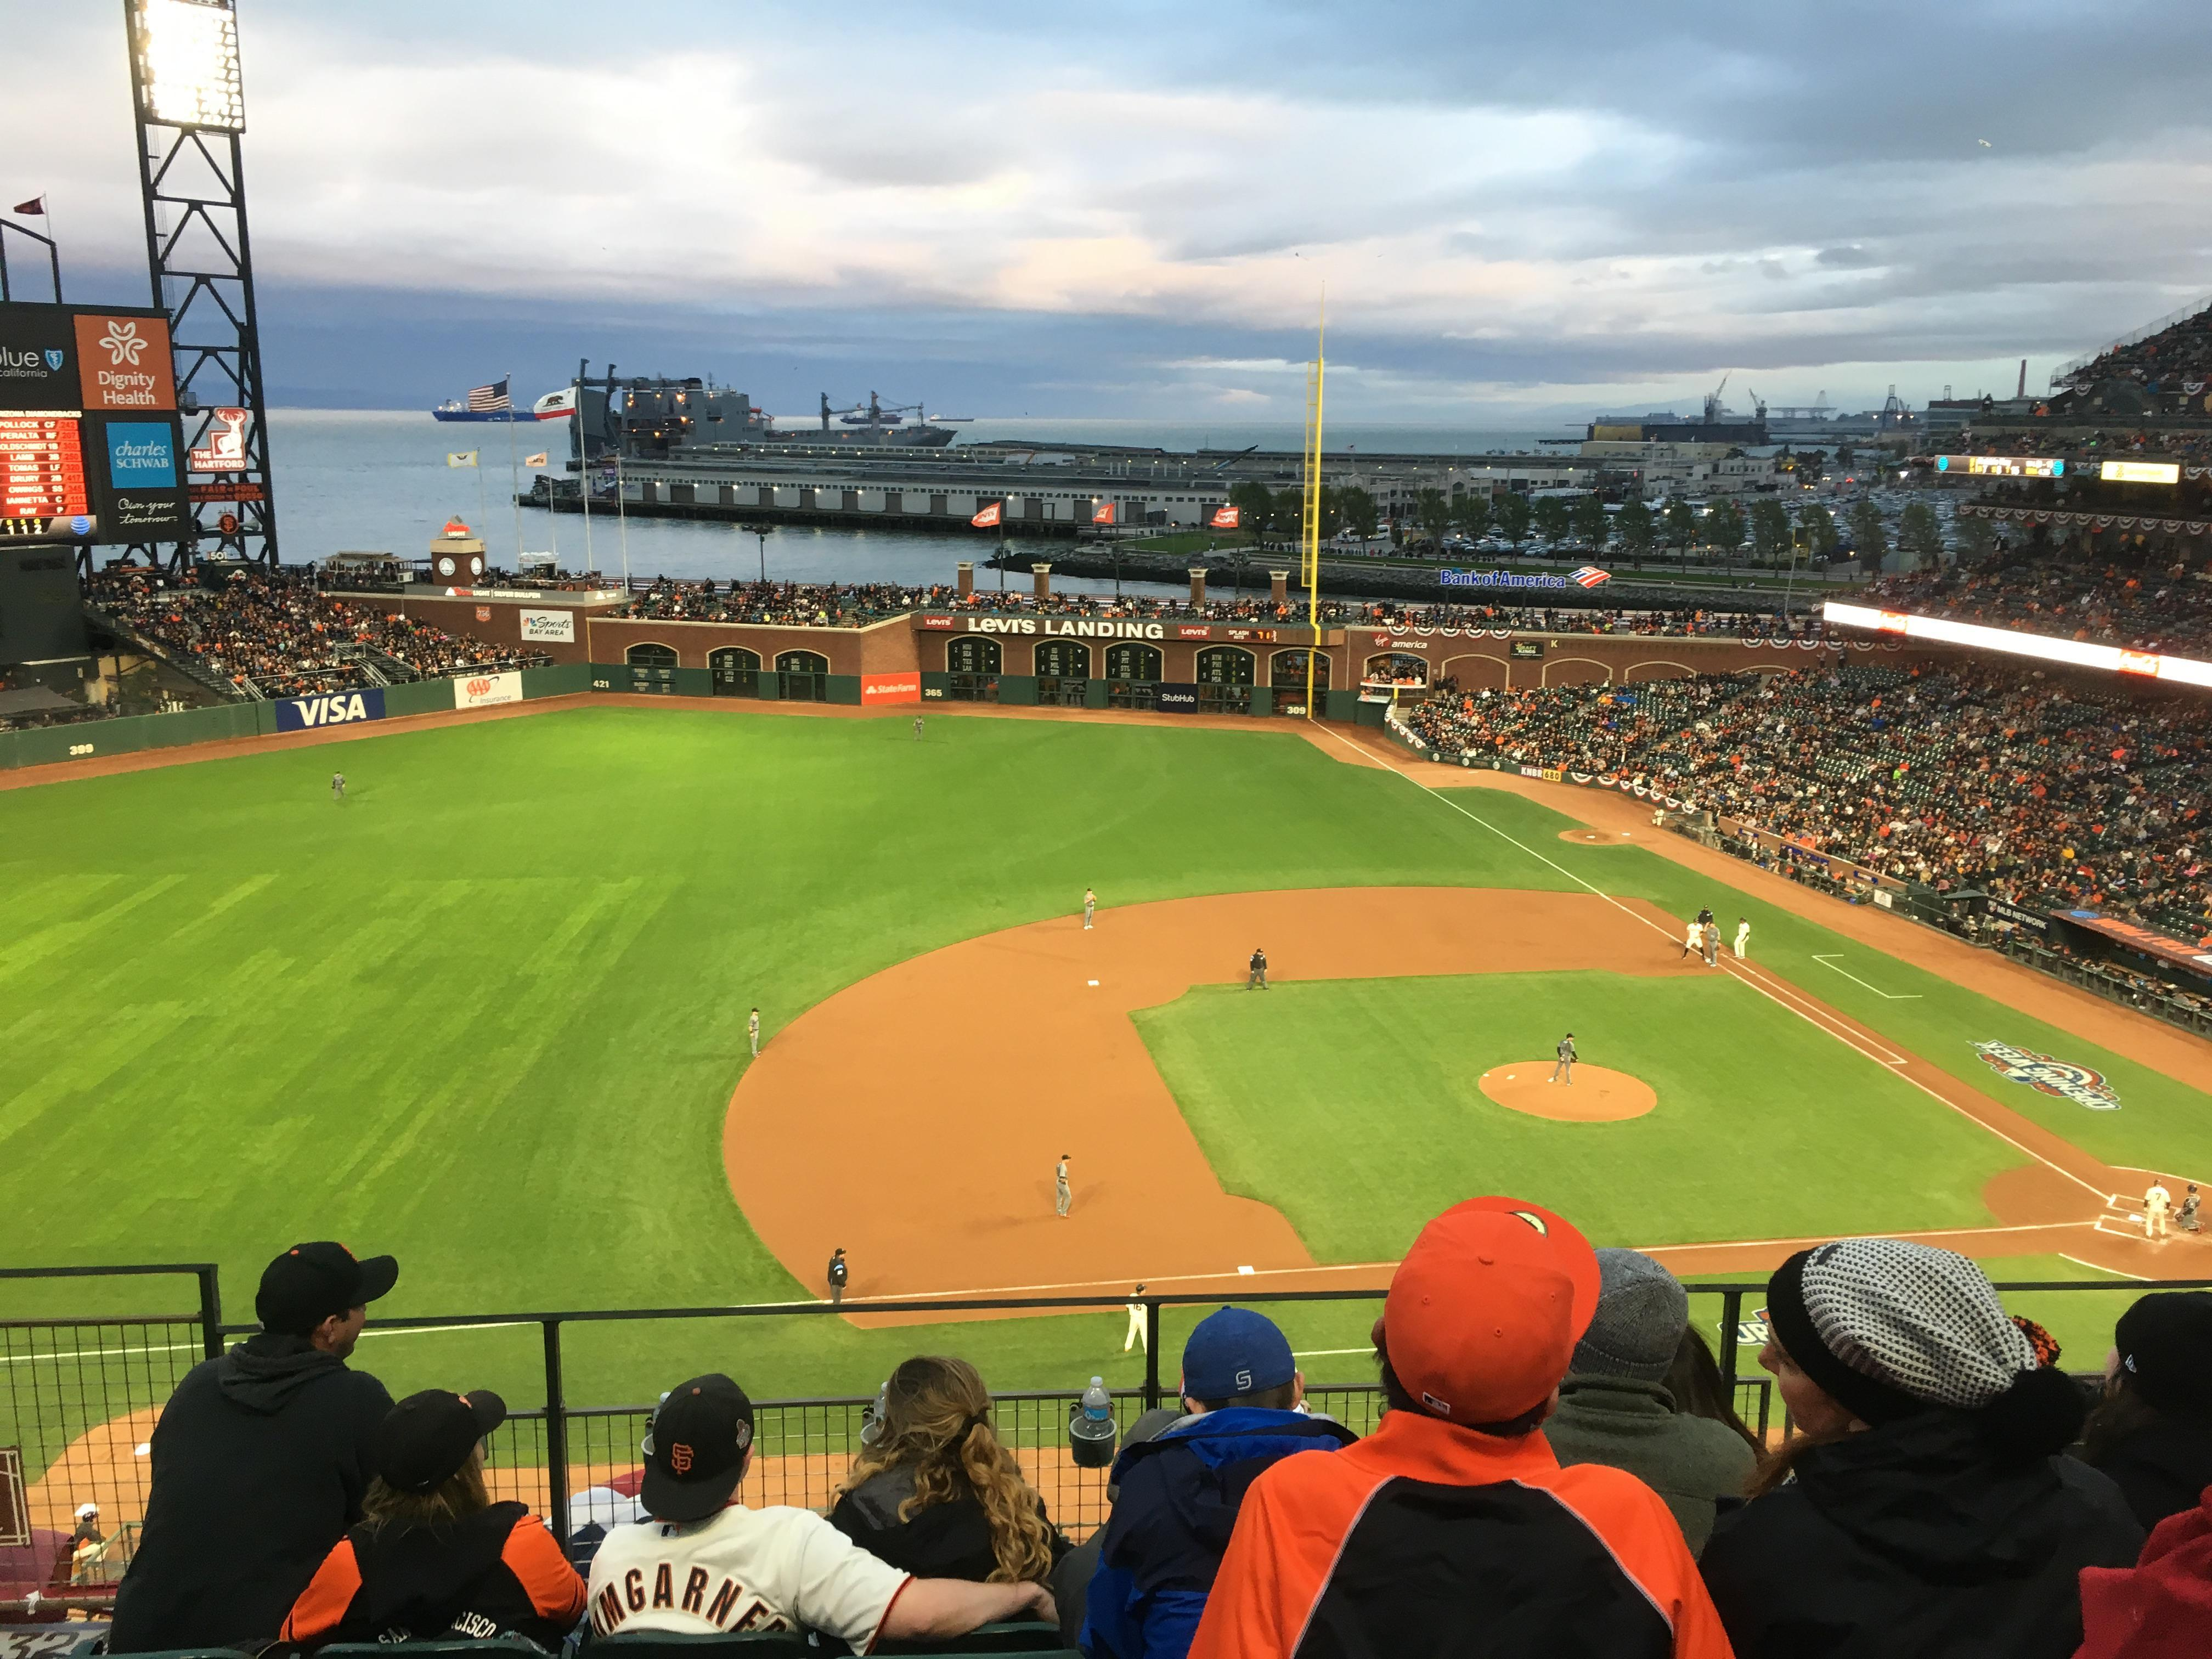 Oracle Park Section VB324 Row E Seat 21